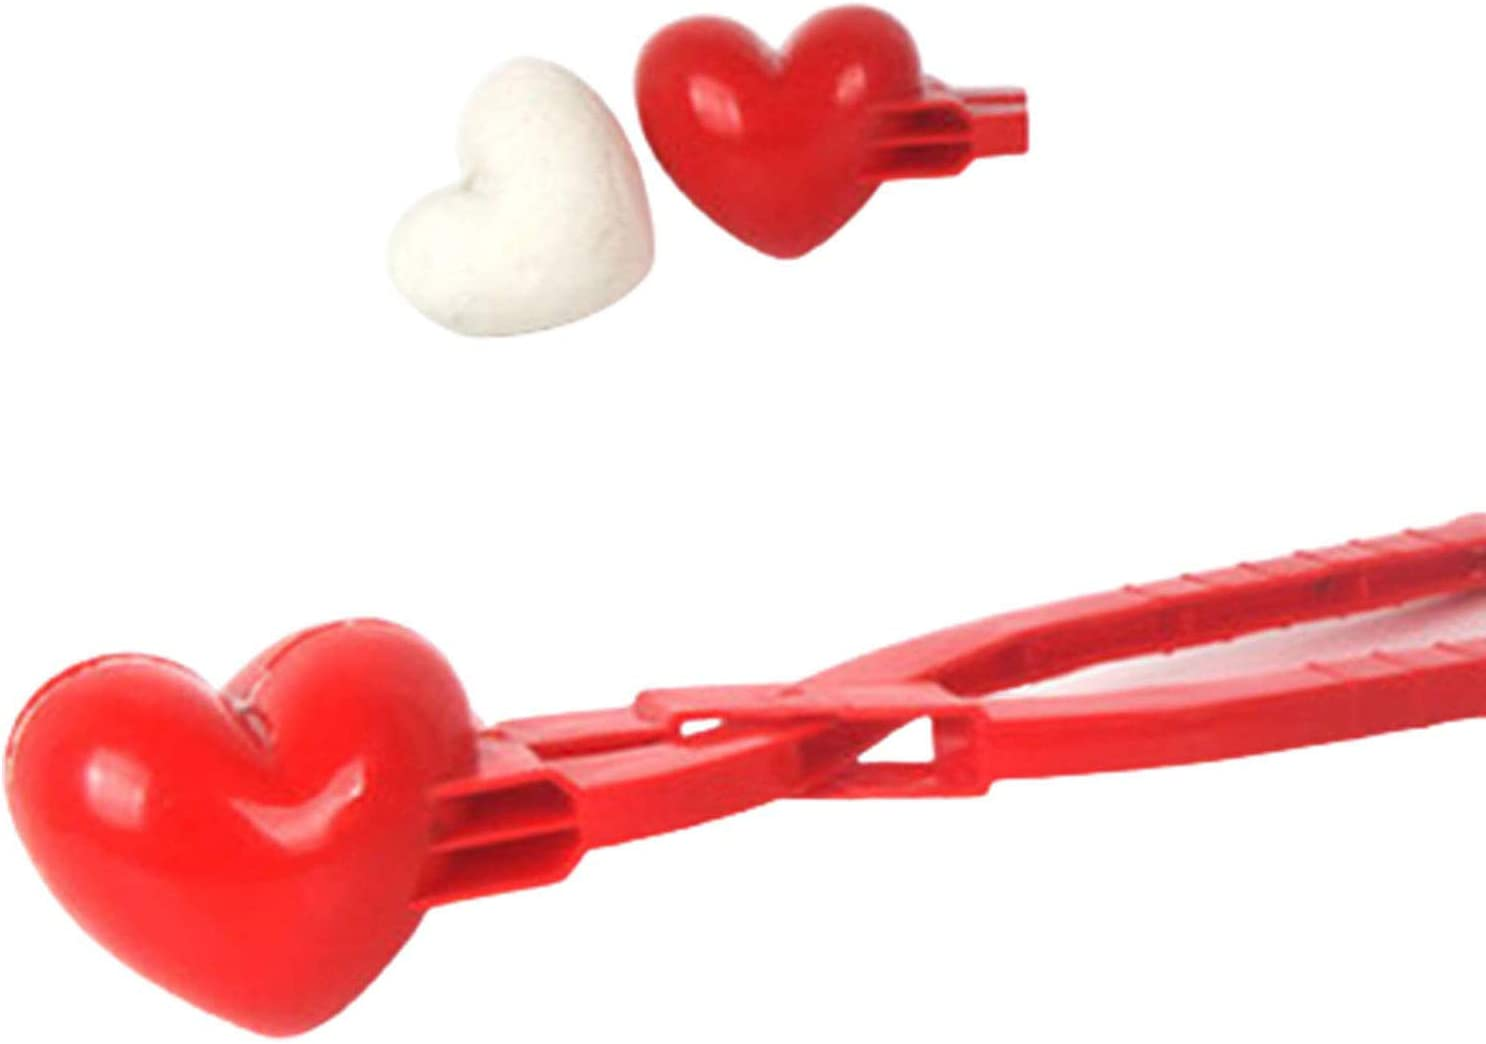 Snow Toys for Kids and Adults Winter Outdoor Play metiet Snowball Maker Clip Heart Shaped Snowball Maker Animal Shaped Snow Sand Mold Tool